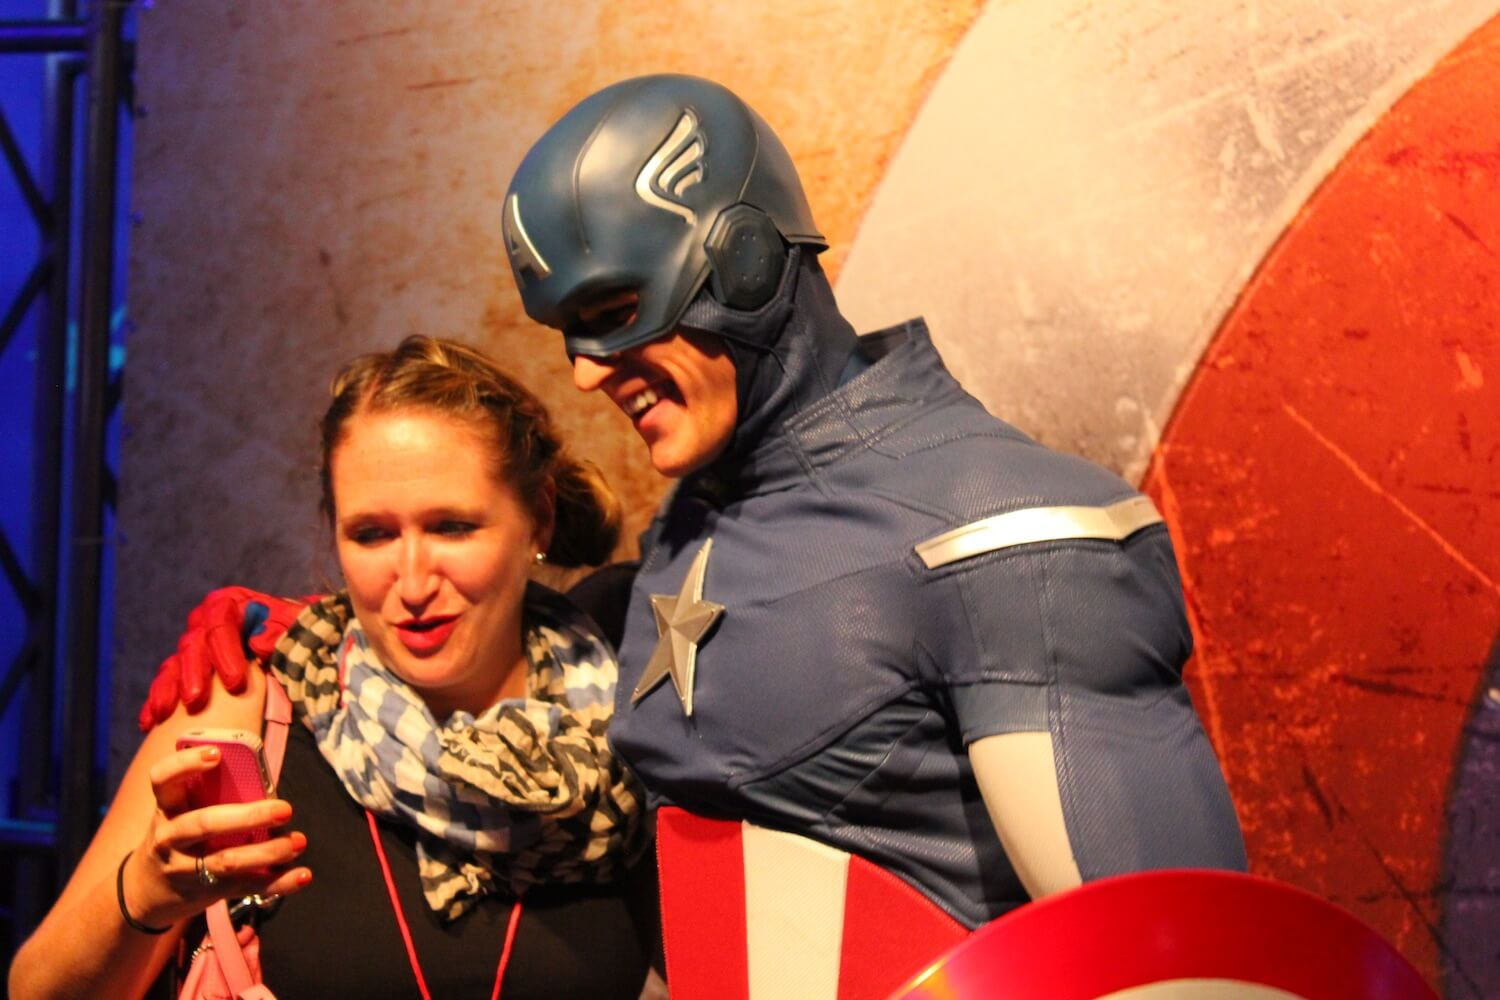 Captain America Character Debuts At 2013 D23 Expo, Ready